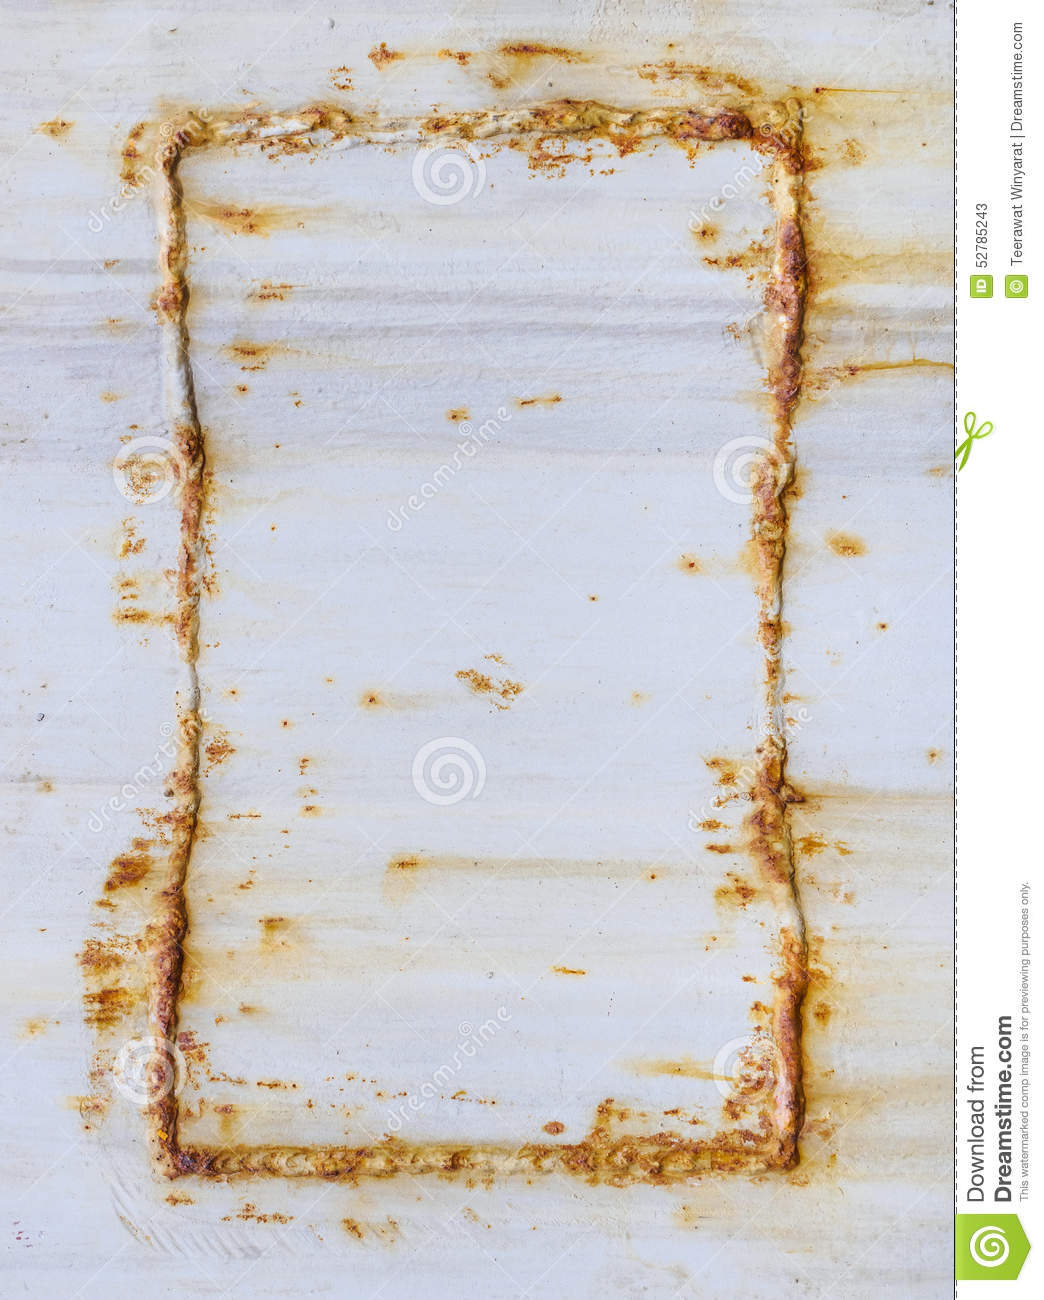 Metal Texture With Rusty Frame Stock Image - Image of rusty, corner ...